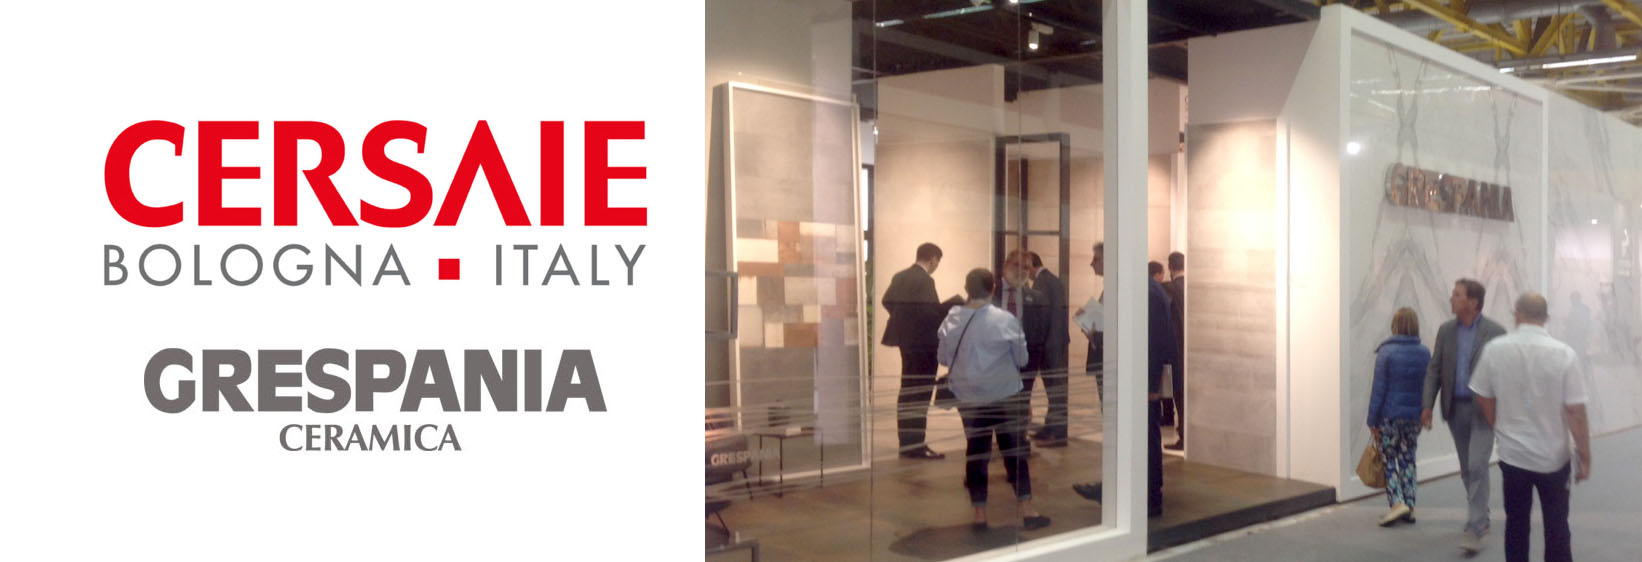 GRESPANIA IS MET WITH RESOUNDING SUCCESS IN CERSAIE 2016